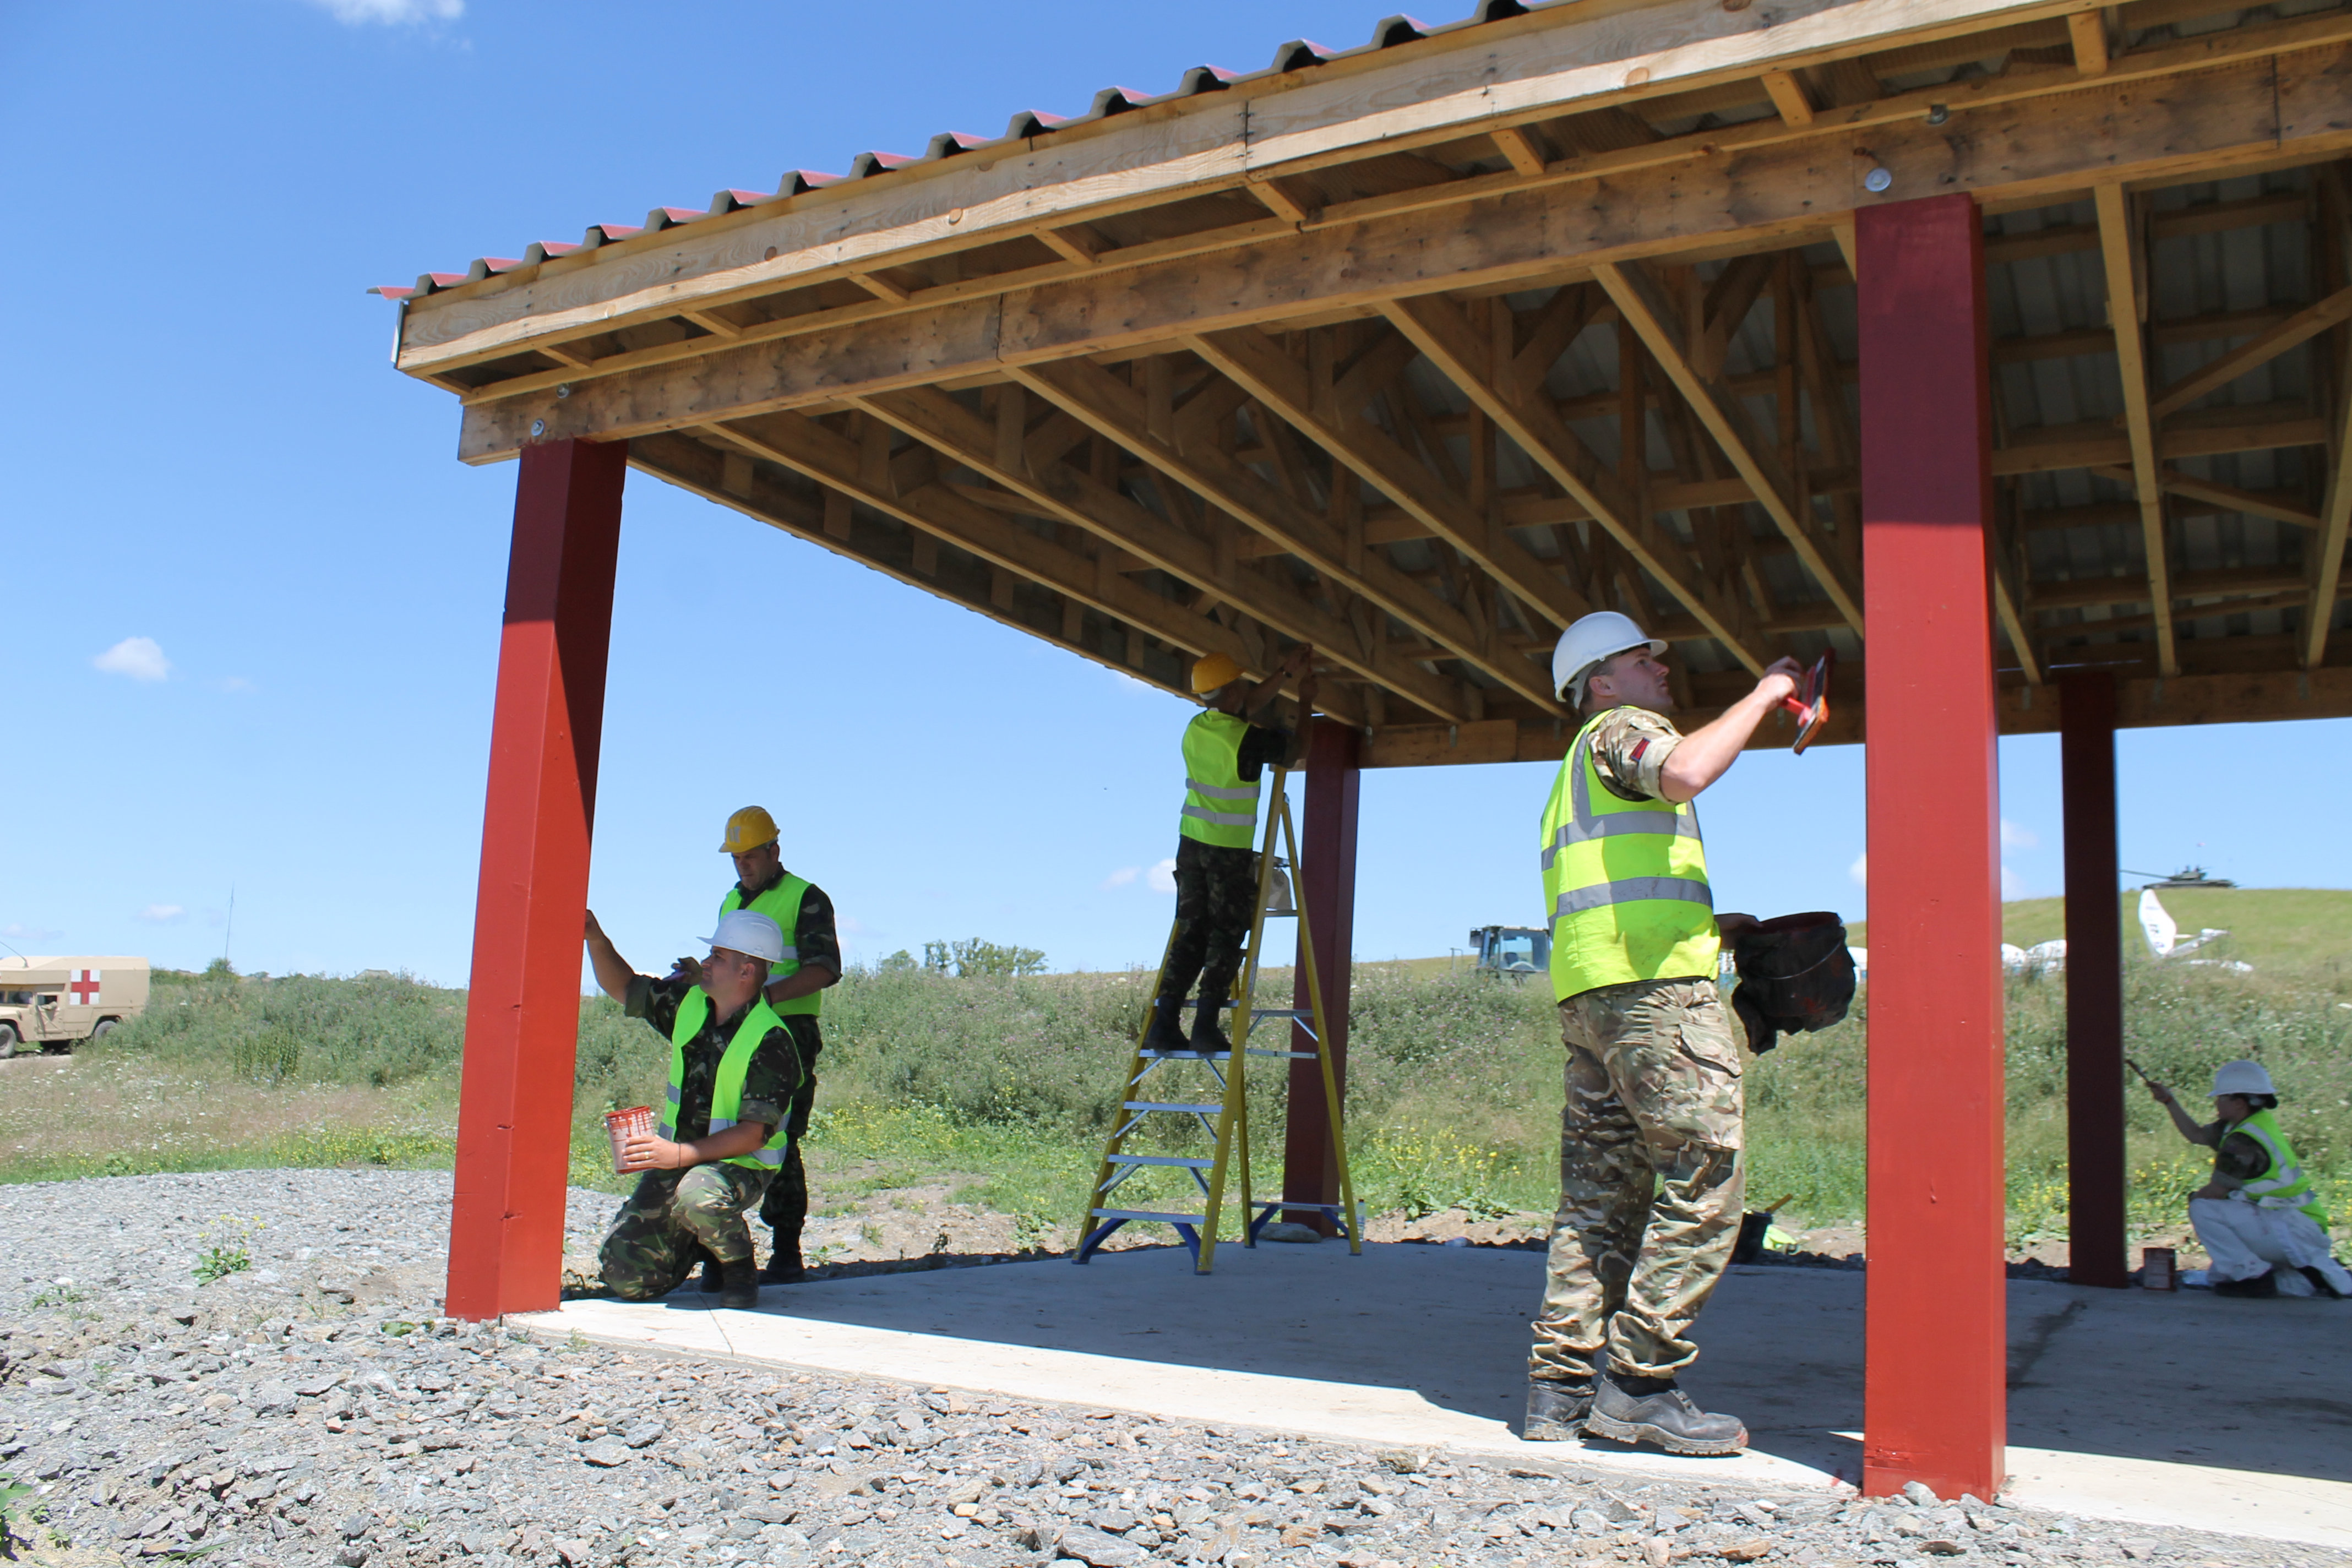 Romanian soldiers put finishing touches on the multipurpose shelter to service the ammunition storage facility and the nonstandard live fire range as Lt. Gen. Ben Hodges and U.S. ambassador to Romania Hans Klemm toured the work performed during Resolute Castle, the exercise for engineers training to build infrastructure, at the Joint National Training Center in Cincu, Romania. (Jen Judson/Staff)